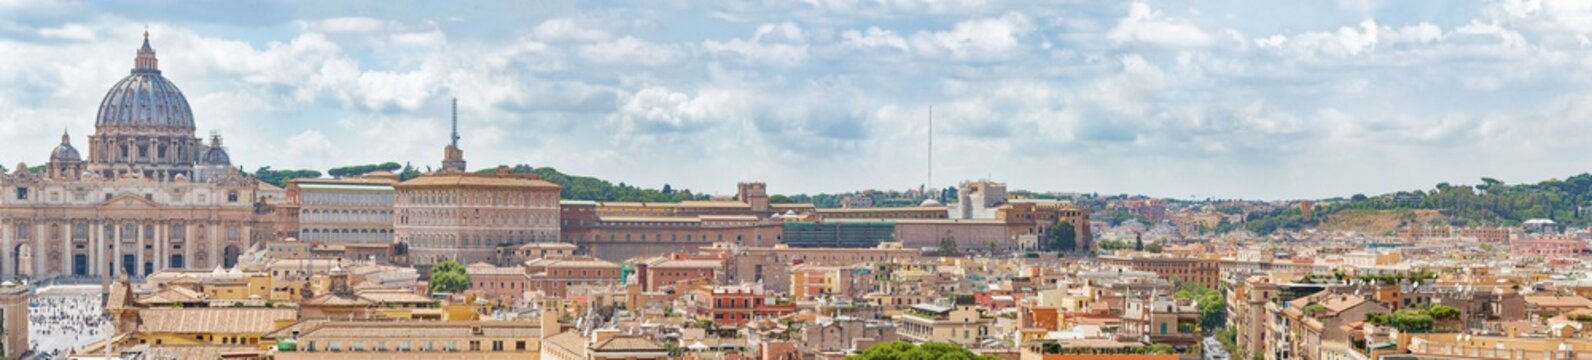 The panoramic  view on the Basilica of St. Peter, Vatican, Rome city